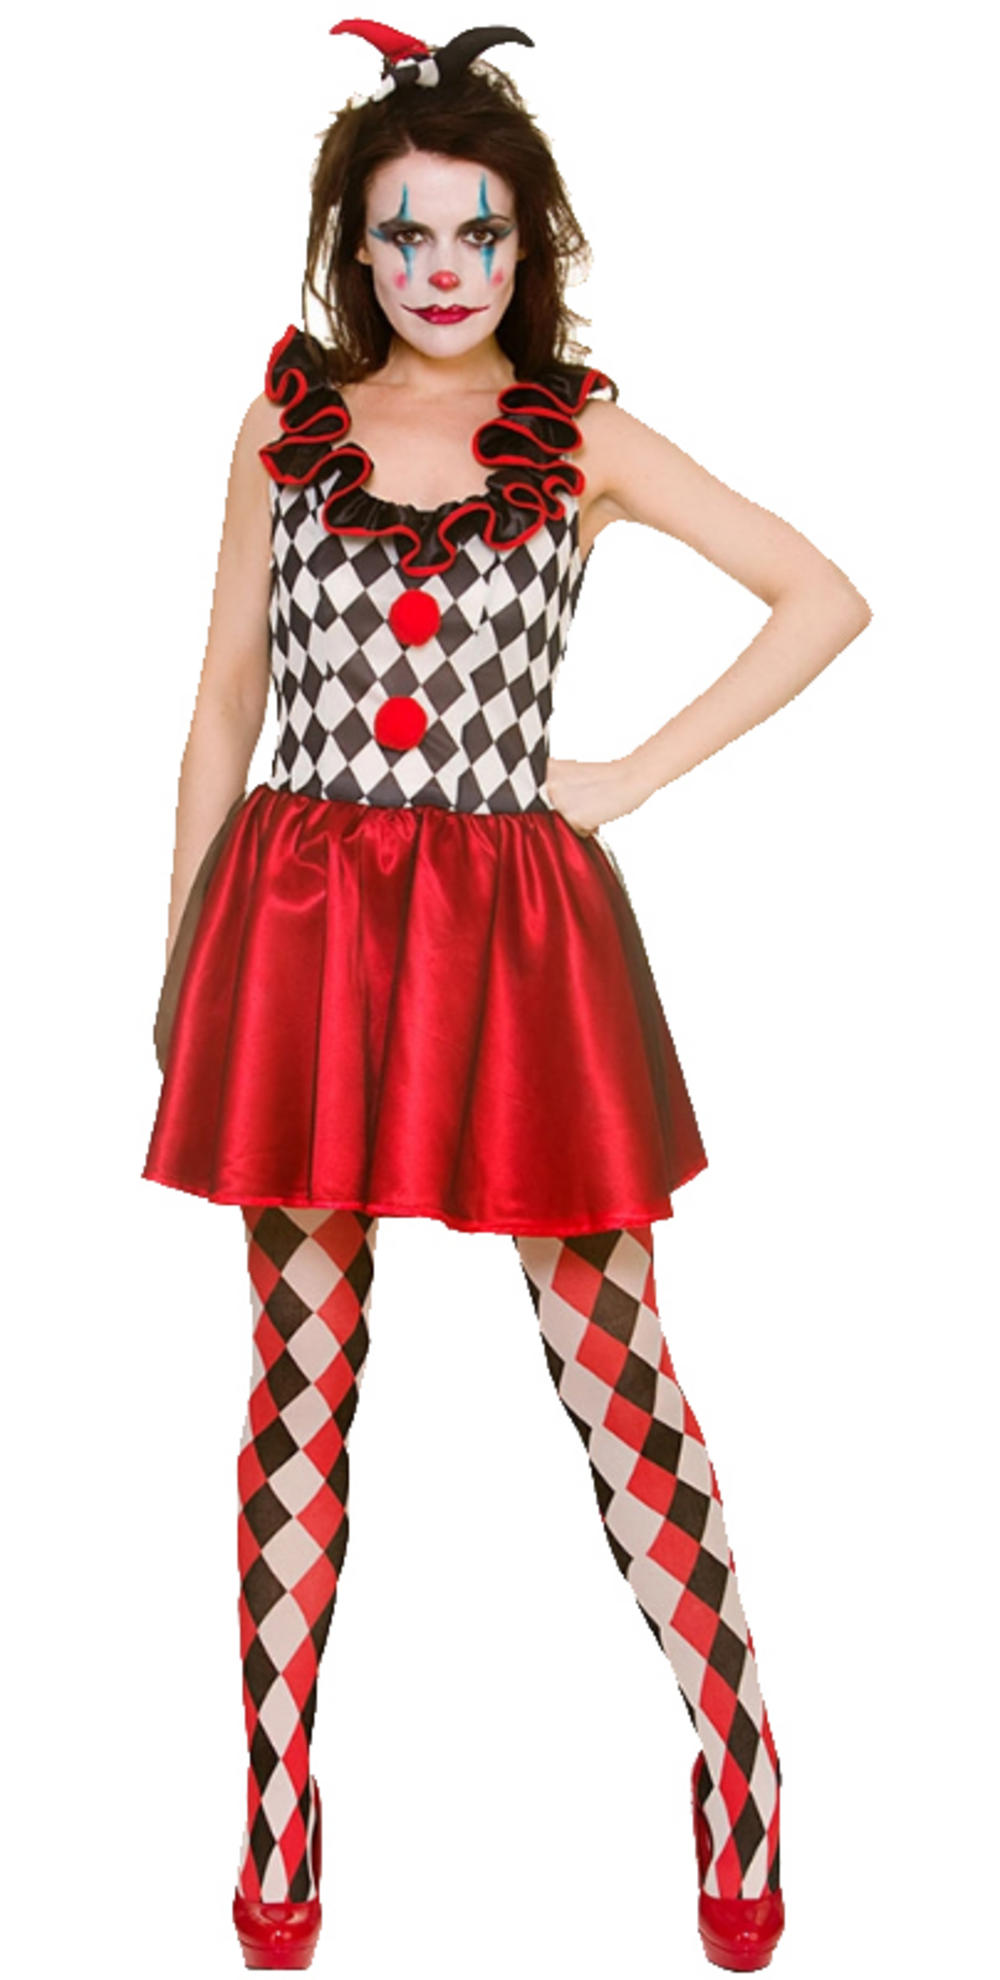 Harlequin Jester Ladies Costume